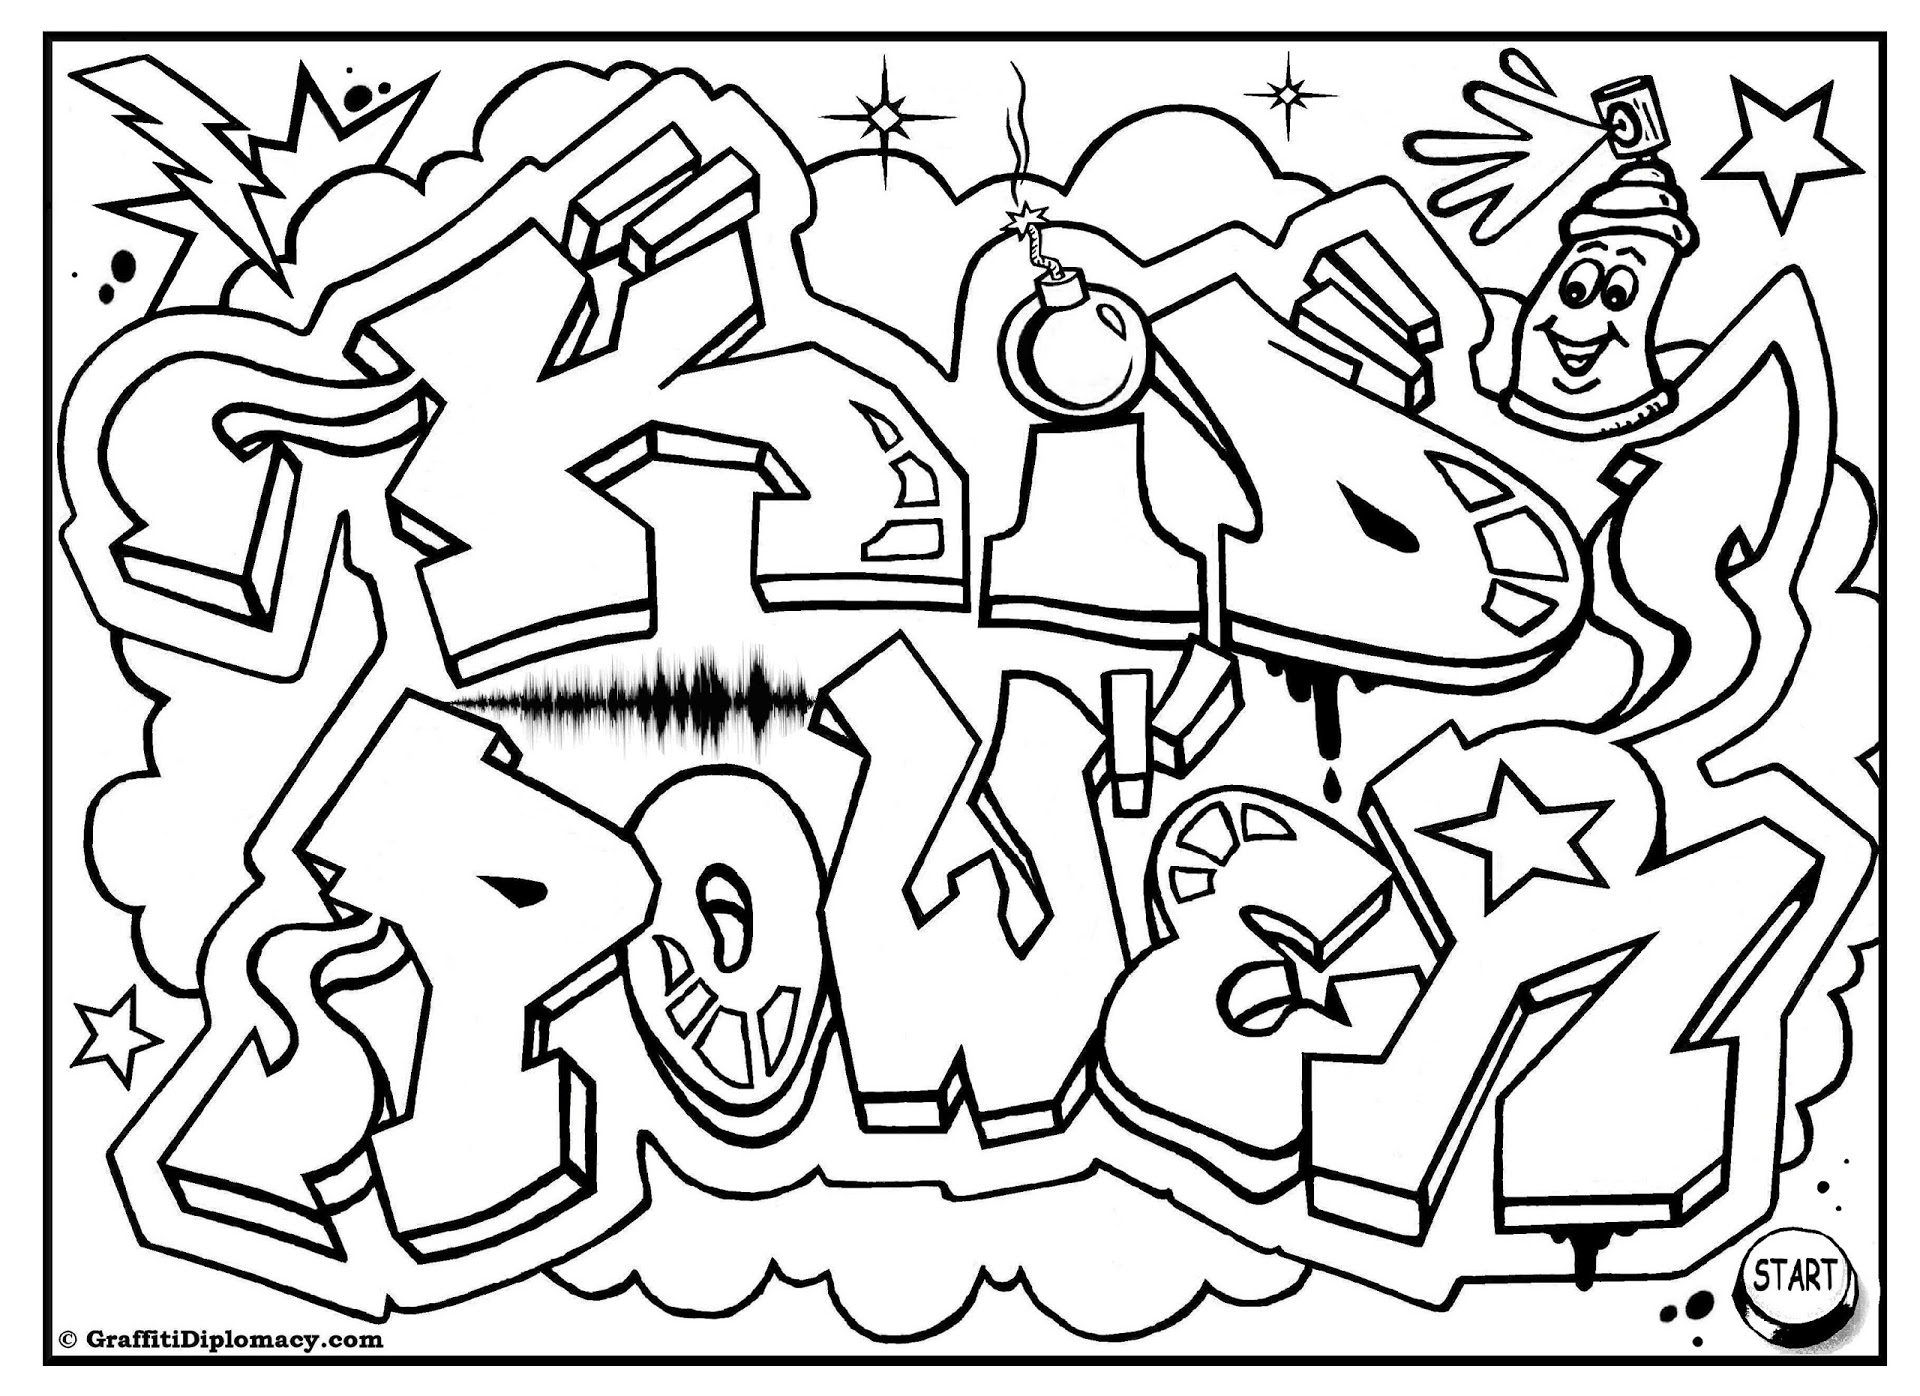 1920x1396 Top Graffiti Words Coloring Pages For Teenagers S Kids Collection